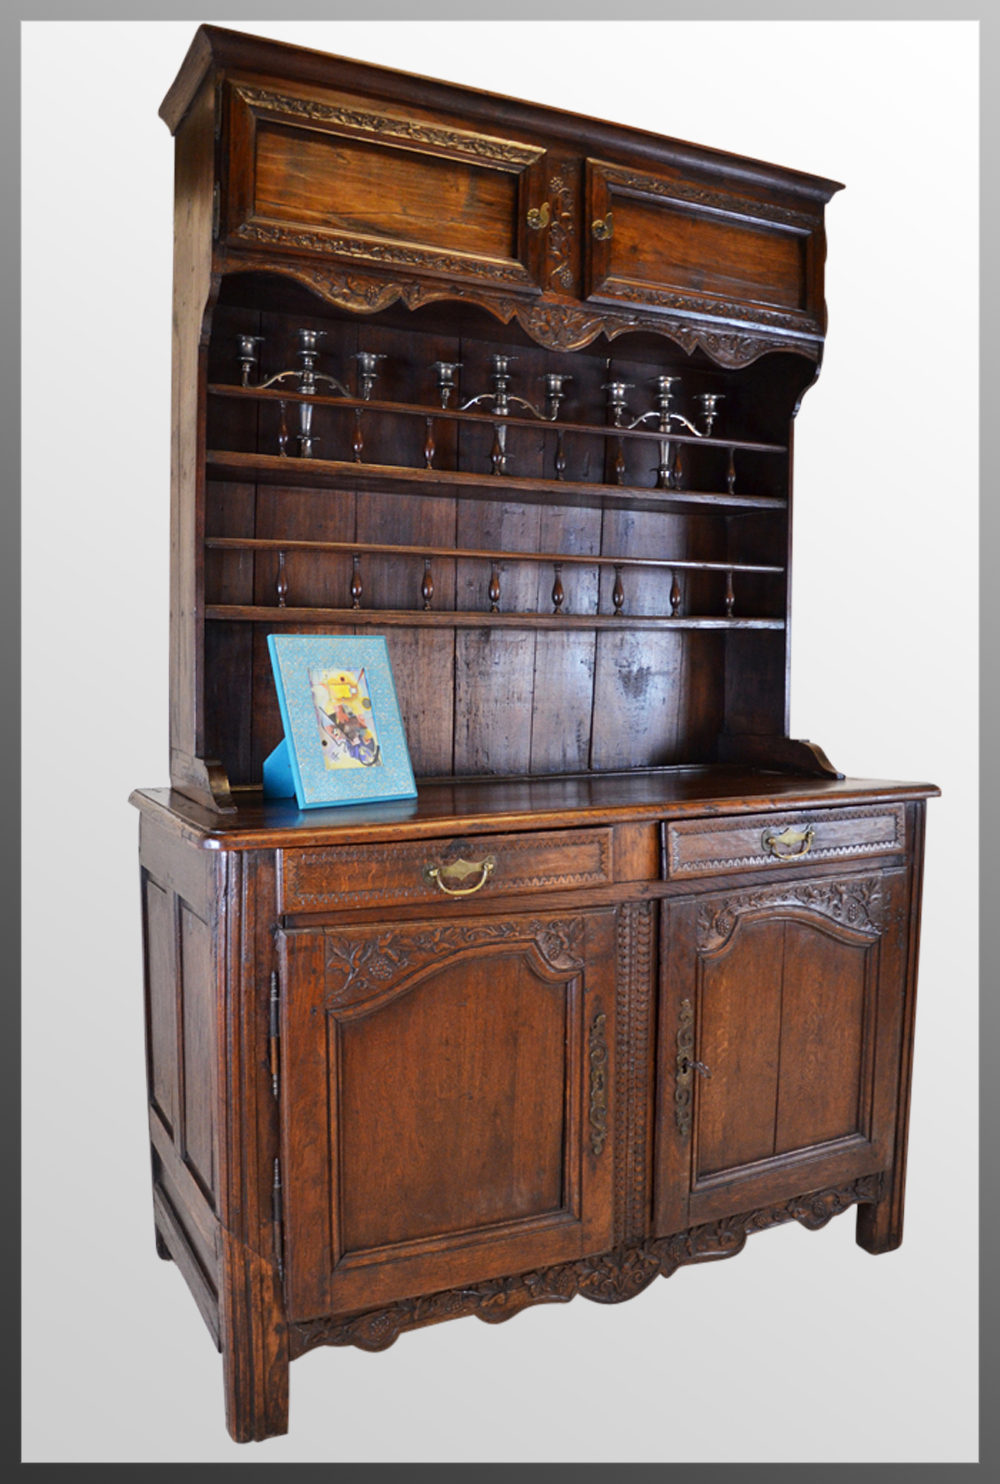 French Country Dresser Kitchen Buffet Cabinet Antique ... - French Country Dresser Kitchen Buffet Cabinet - Antiques Atlas